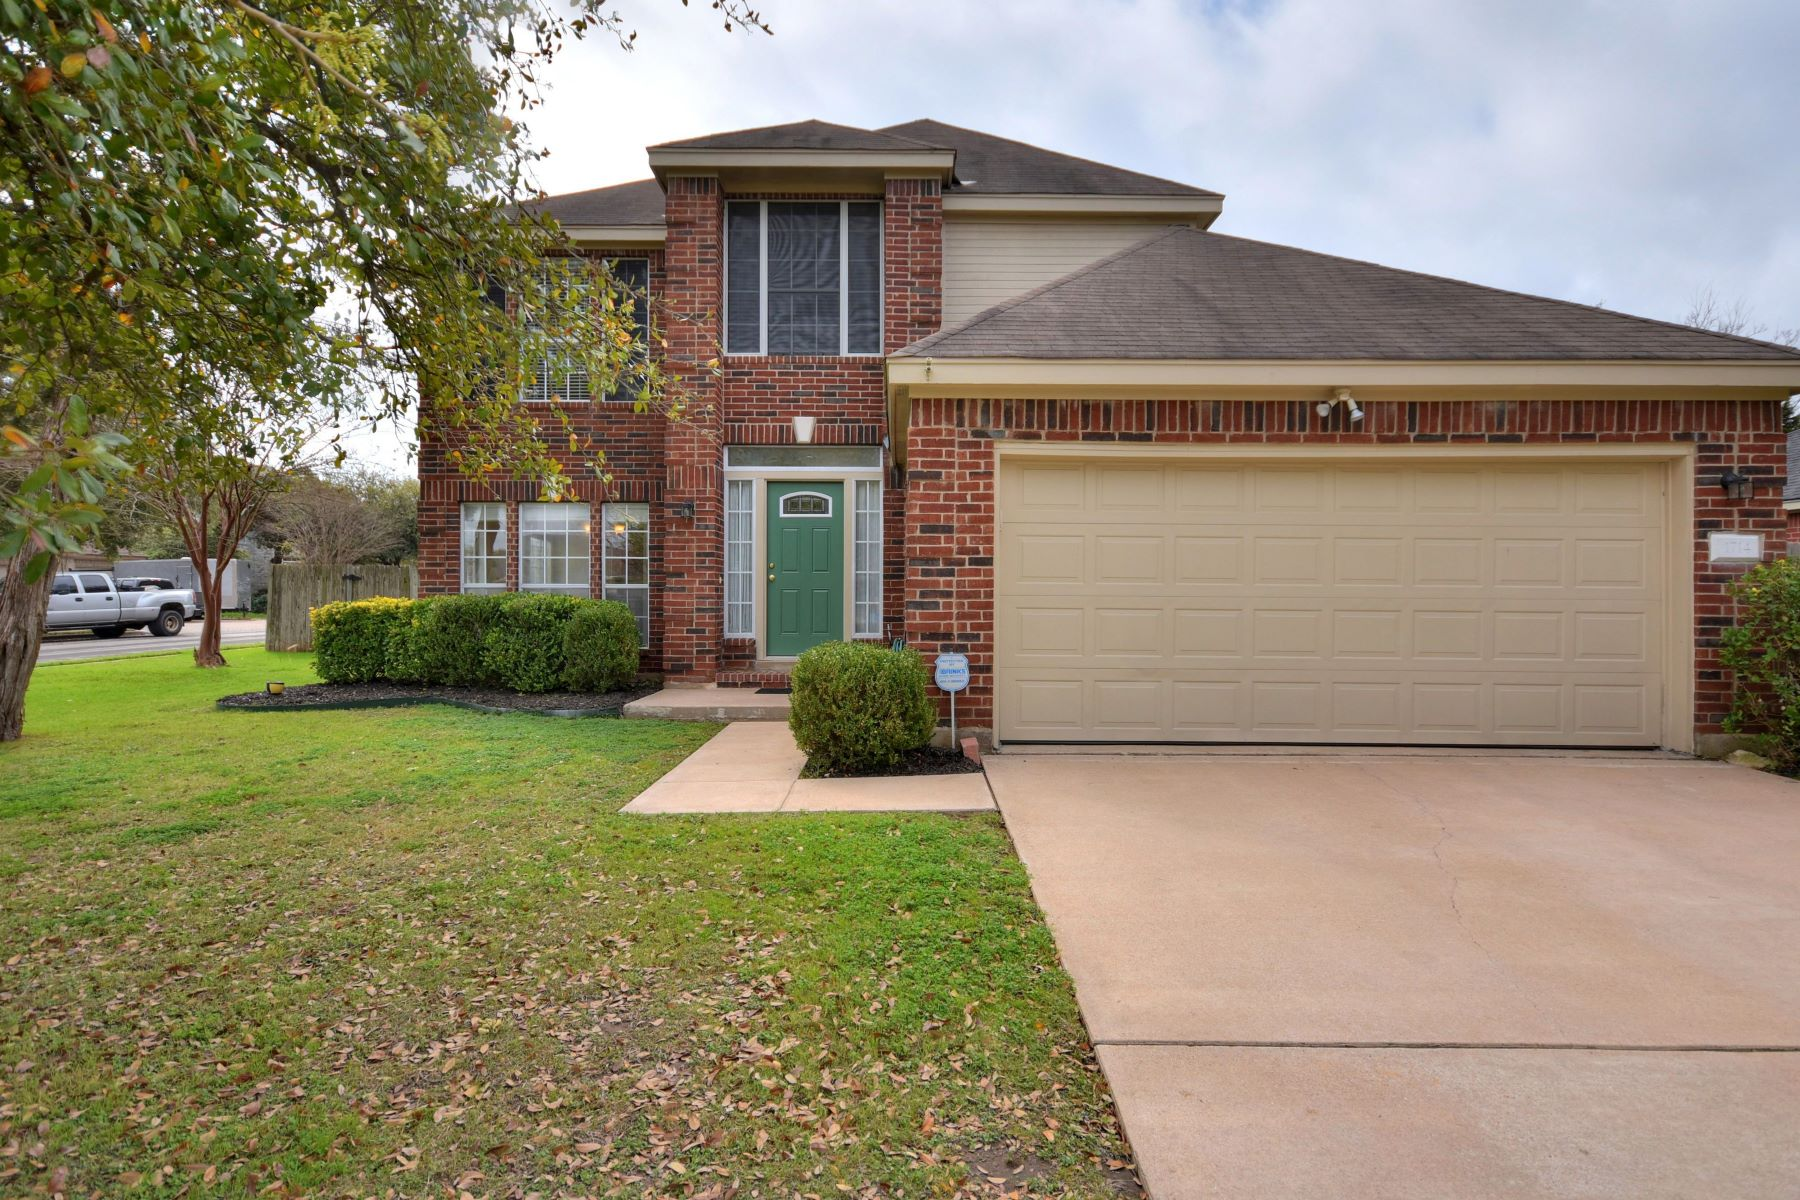 Single Family Homes for Sale at 1714 Greening Way, Leander, TX 78641 1714 Greening Way Leander, Texas 78641 United States